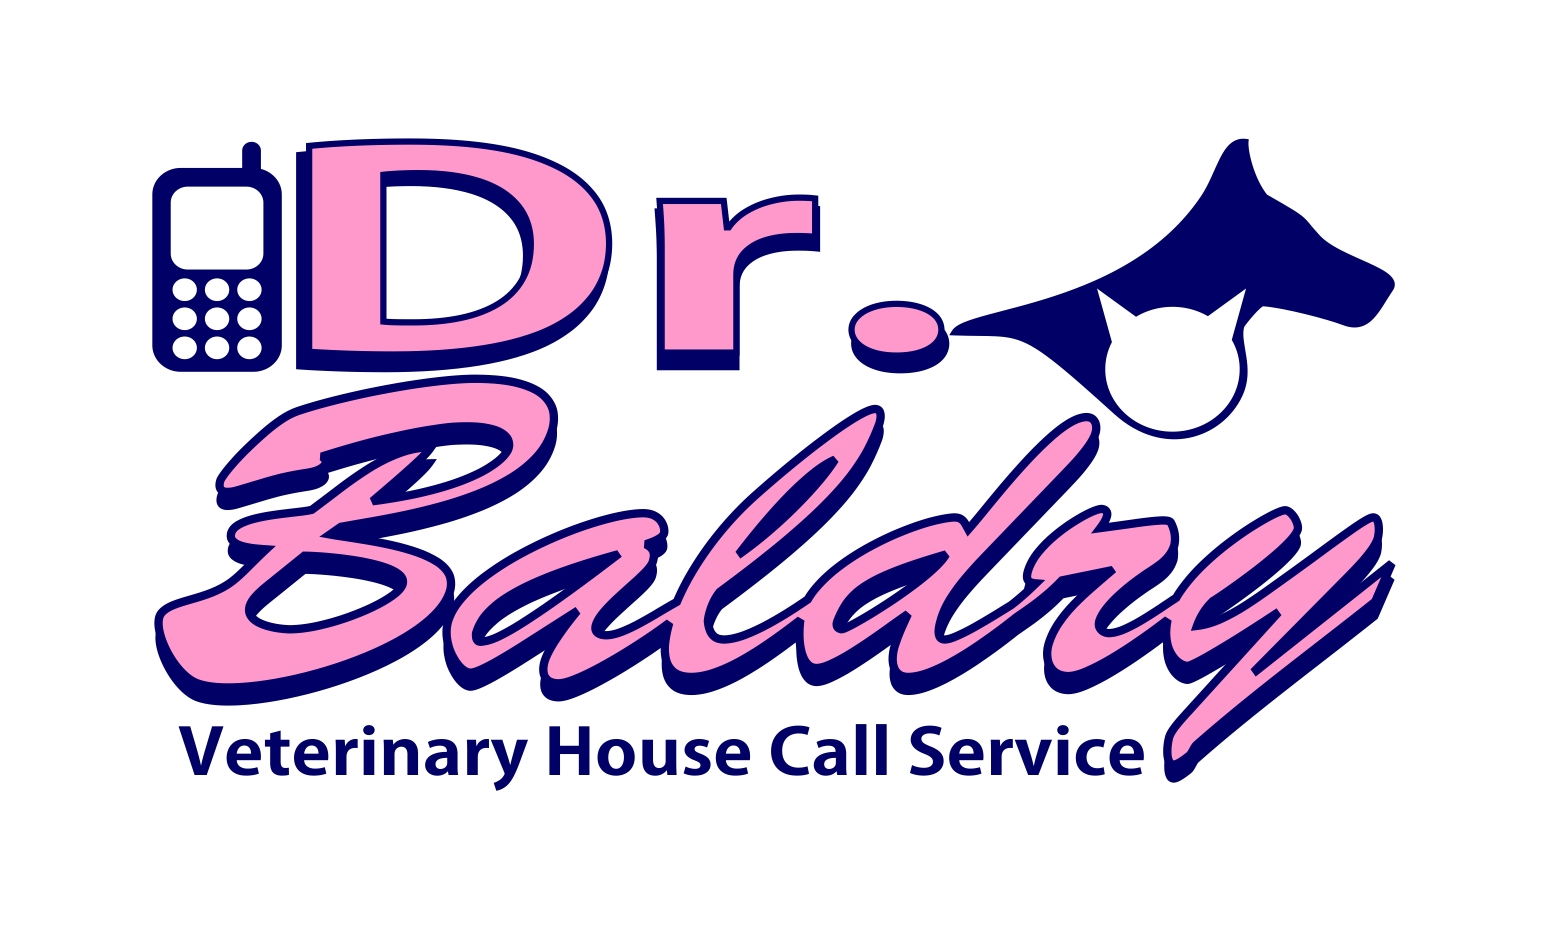 Logo Design by joca - Entry No. 168 in the Logo Design Contest Captivating Logo Design for Baldry Veterinary House Call Service.